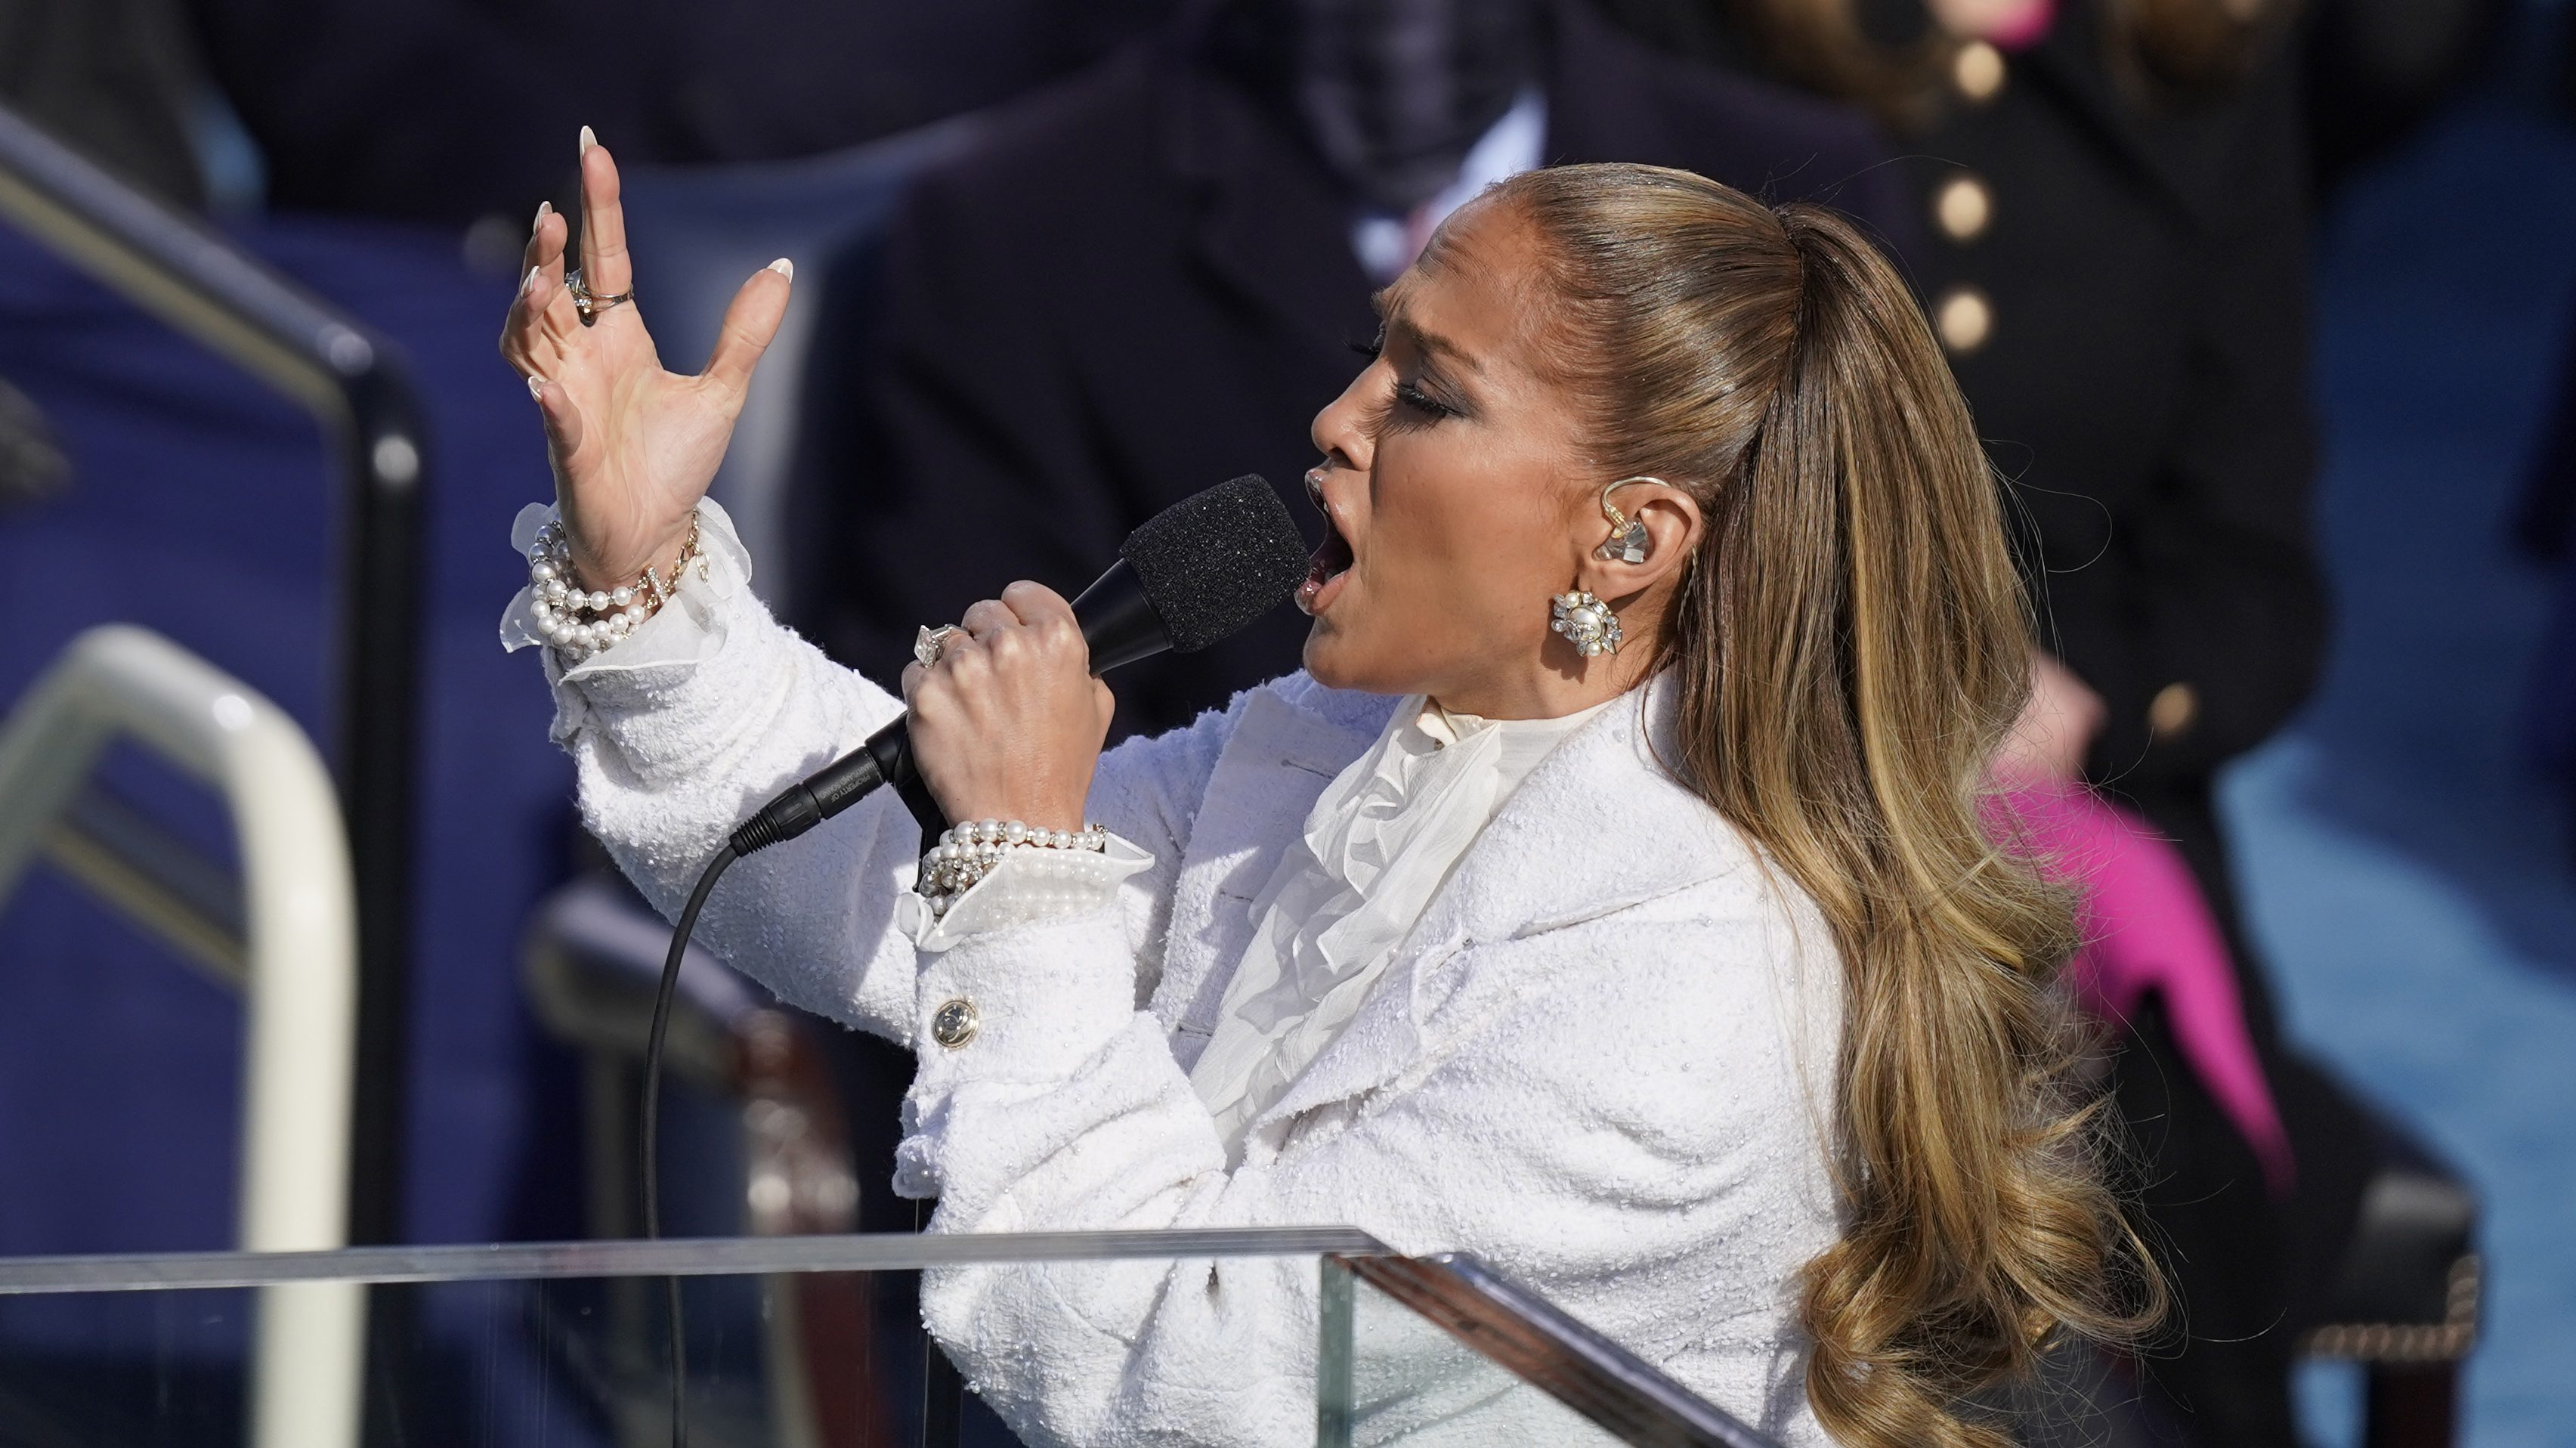 Jennifer Lopez performs during the 59th presidential inauguration in Washington, D.C. on Wednesday, Jan. 20, 2021.